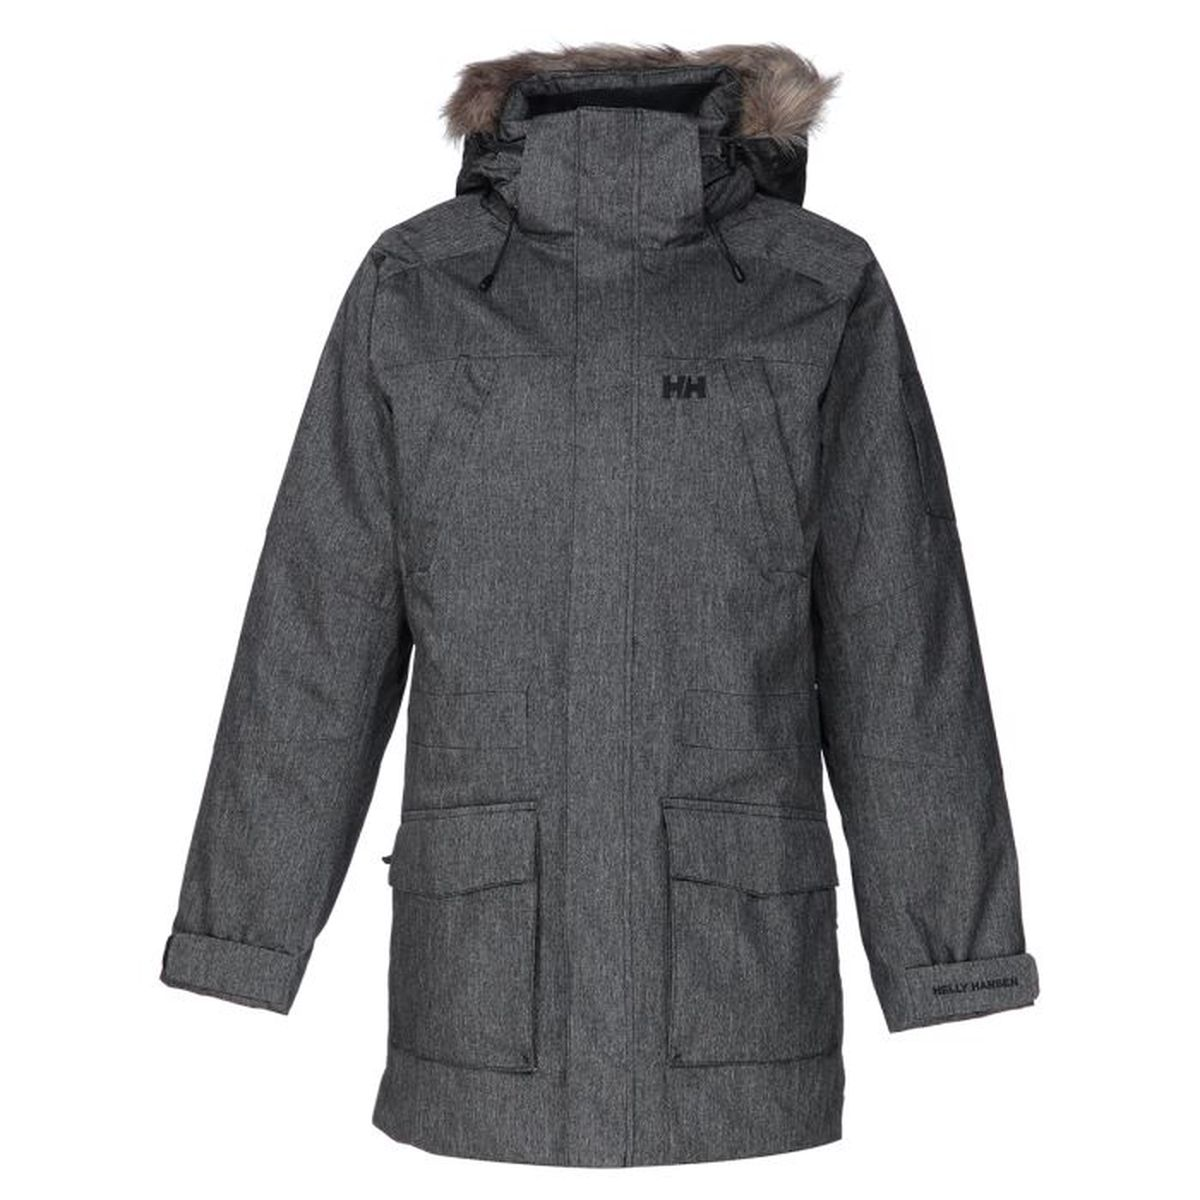 helly hansen parka homme gris achat vente blouson de sport soldes d hiver d s le 6. Black Bedroom Furniture Sets. Home Design Ideas